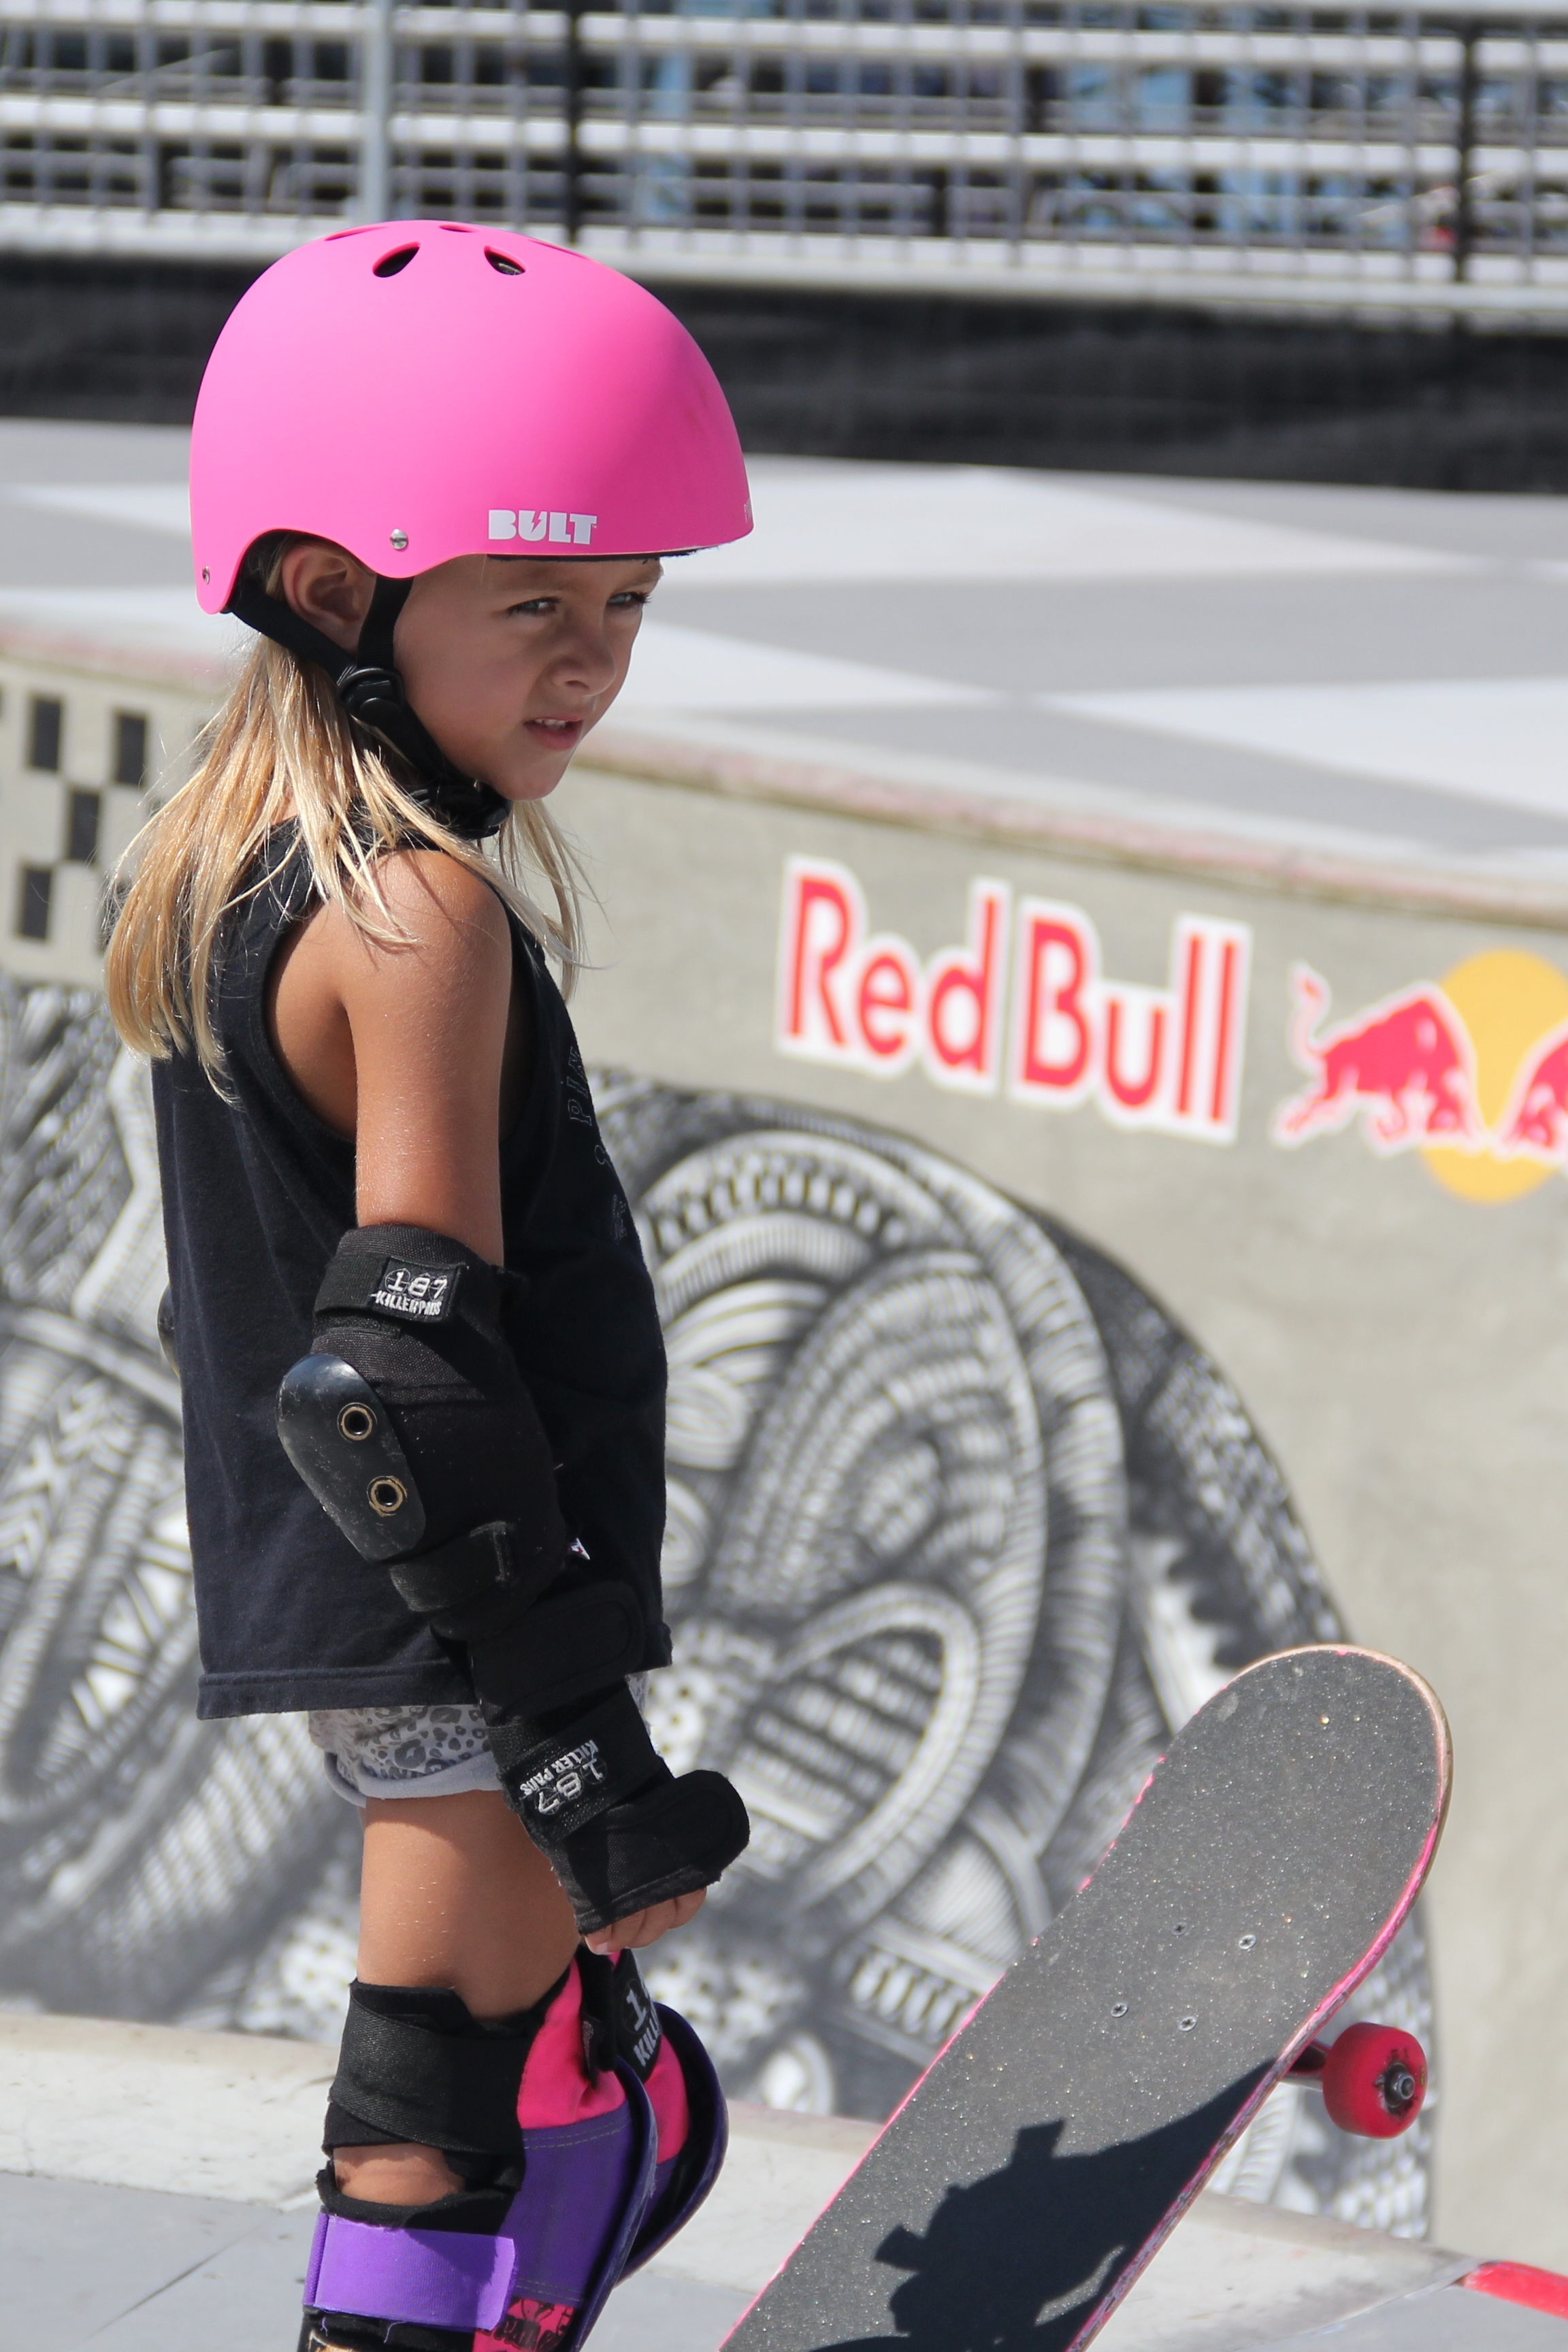 Known for introducing their pink helmets, skateboards and loud socks to skateparks across Southern California, the all-girl Pink Helmet Posse showed off their skills at the U.S. Open of Surfing Tuesday morning. Here, Ryann Cannon readies for a ride. Photo: Sean Robb